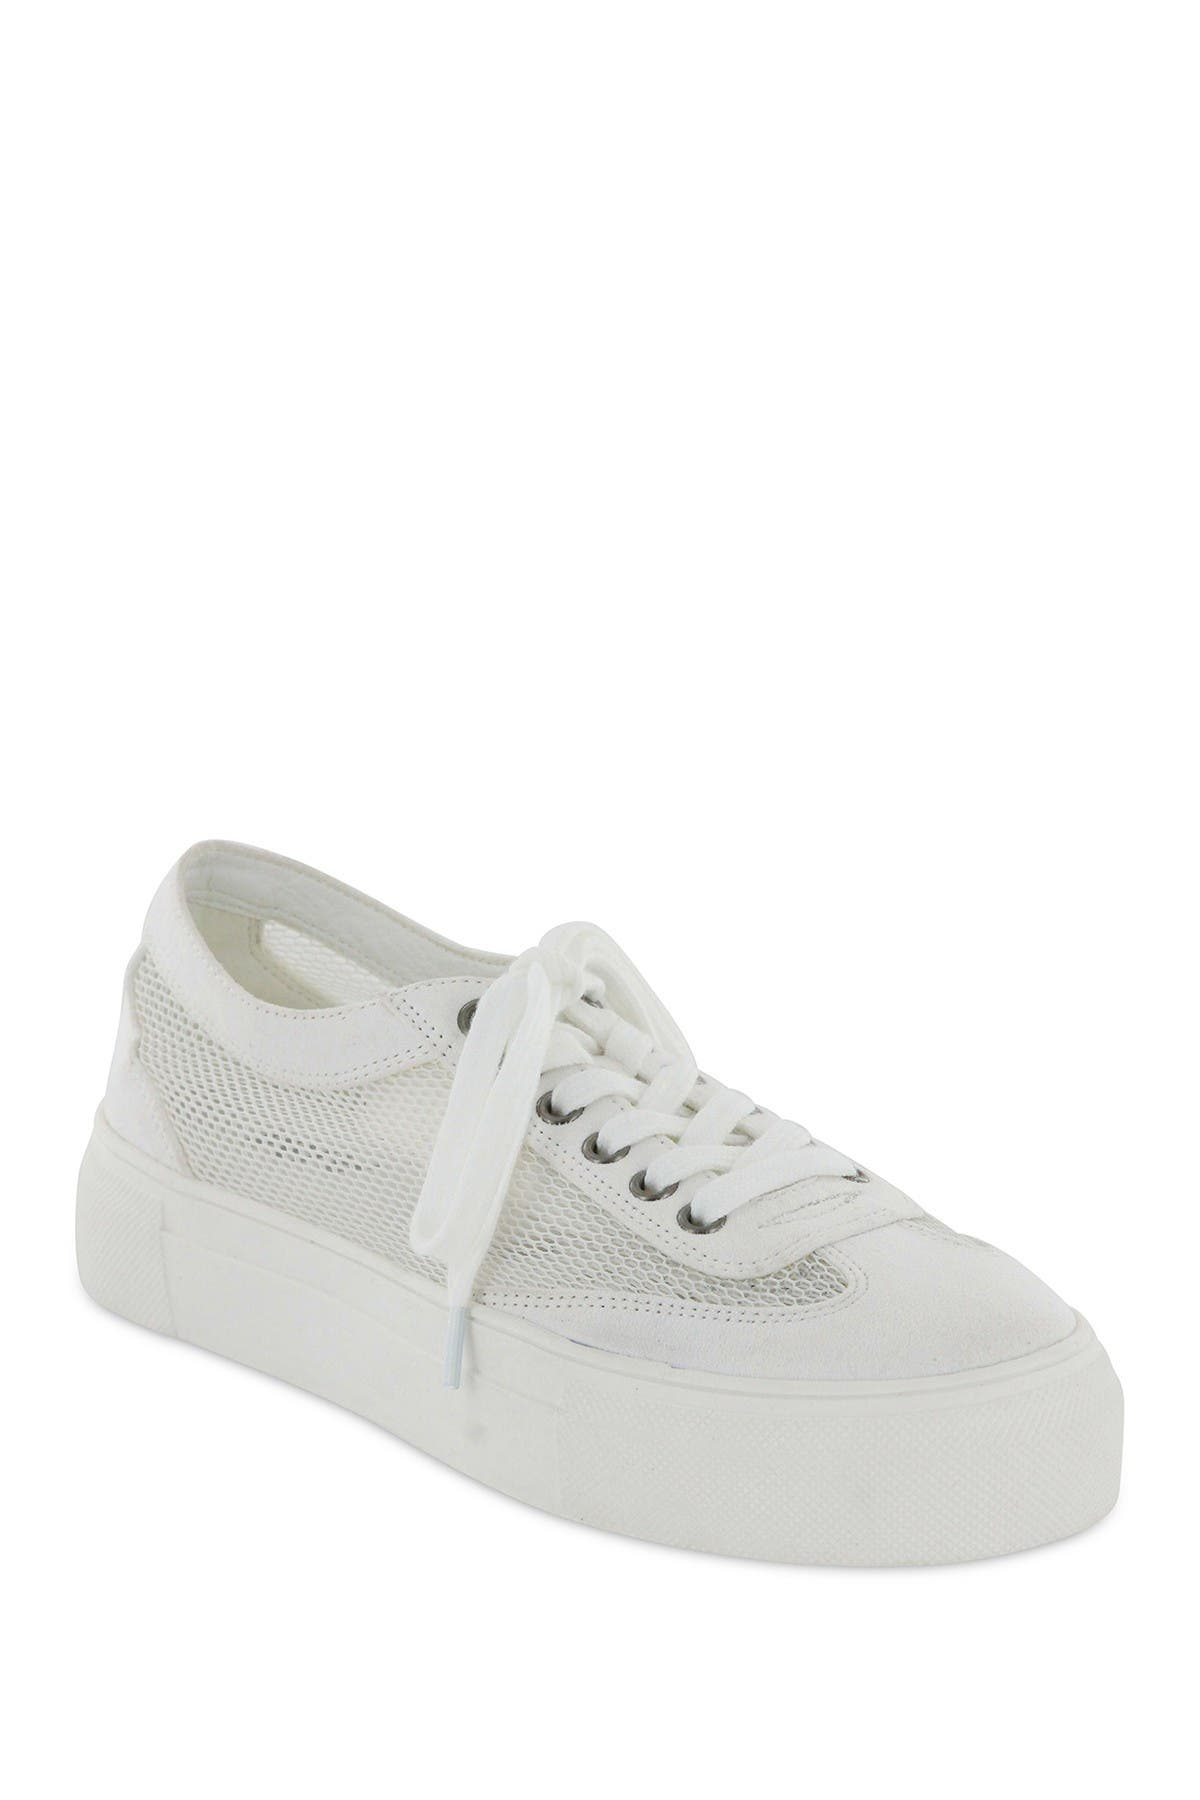 Image of MIA Parson Lace-Up Low Top Flatform Sneaker